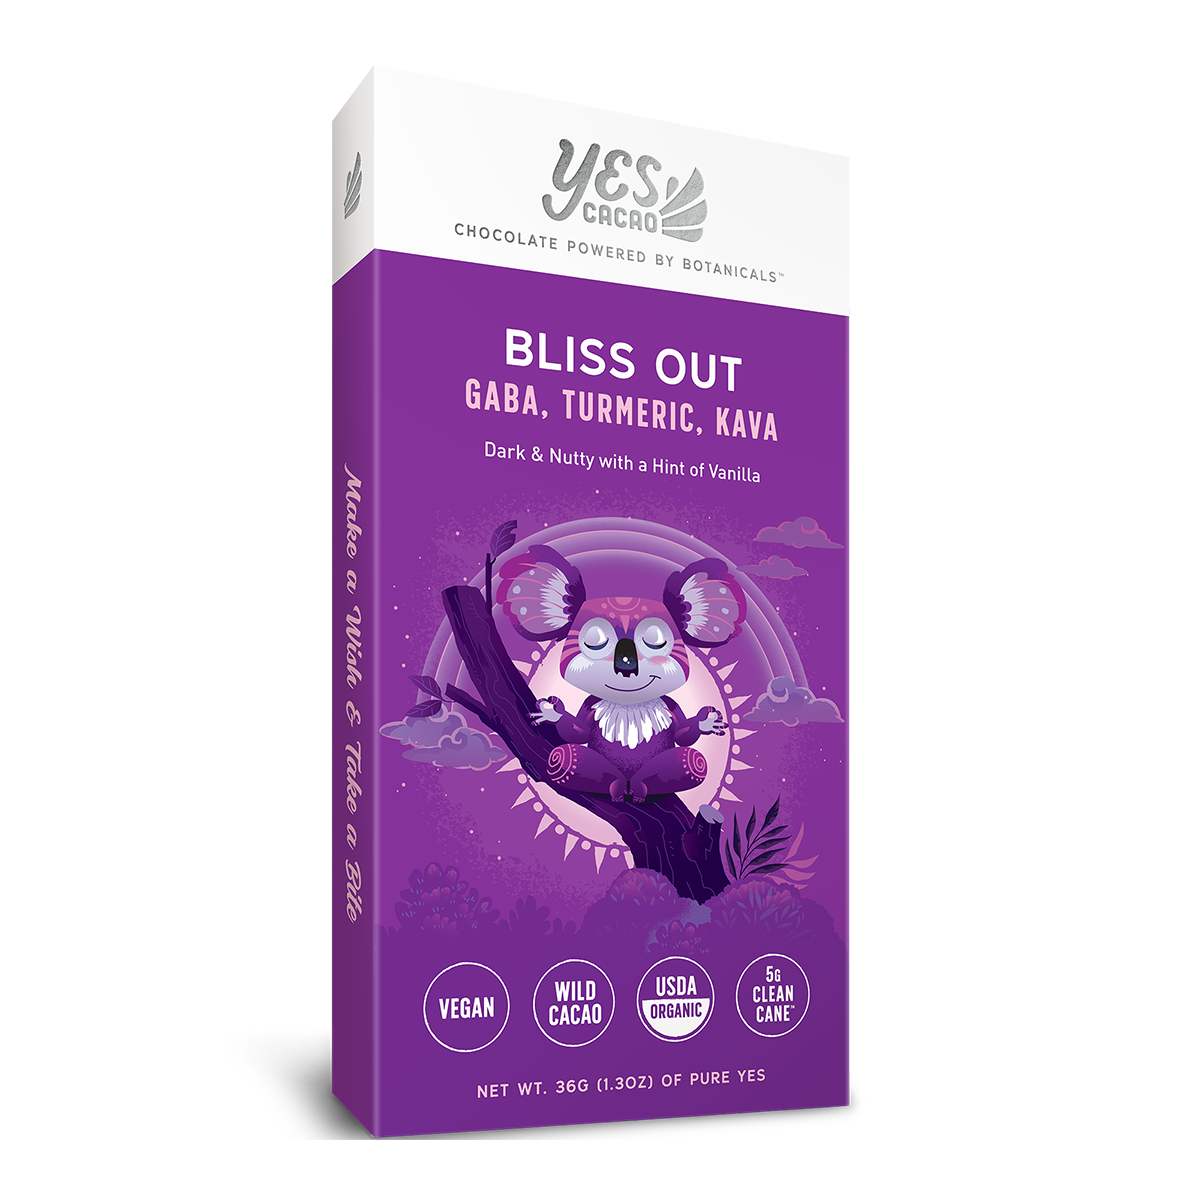 BLISS OUT Botanical Chocolate®